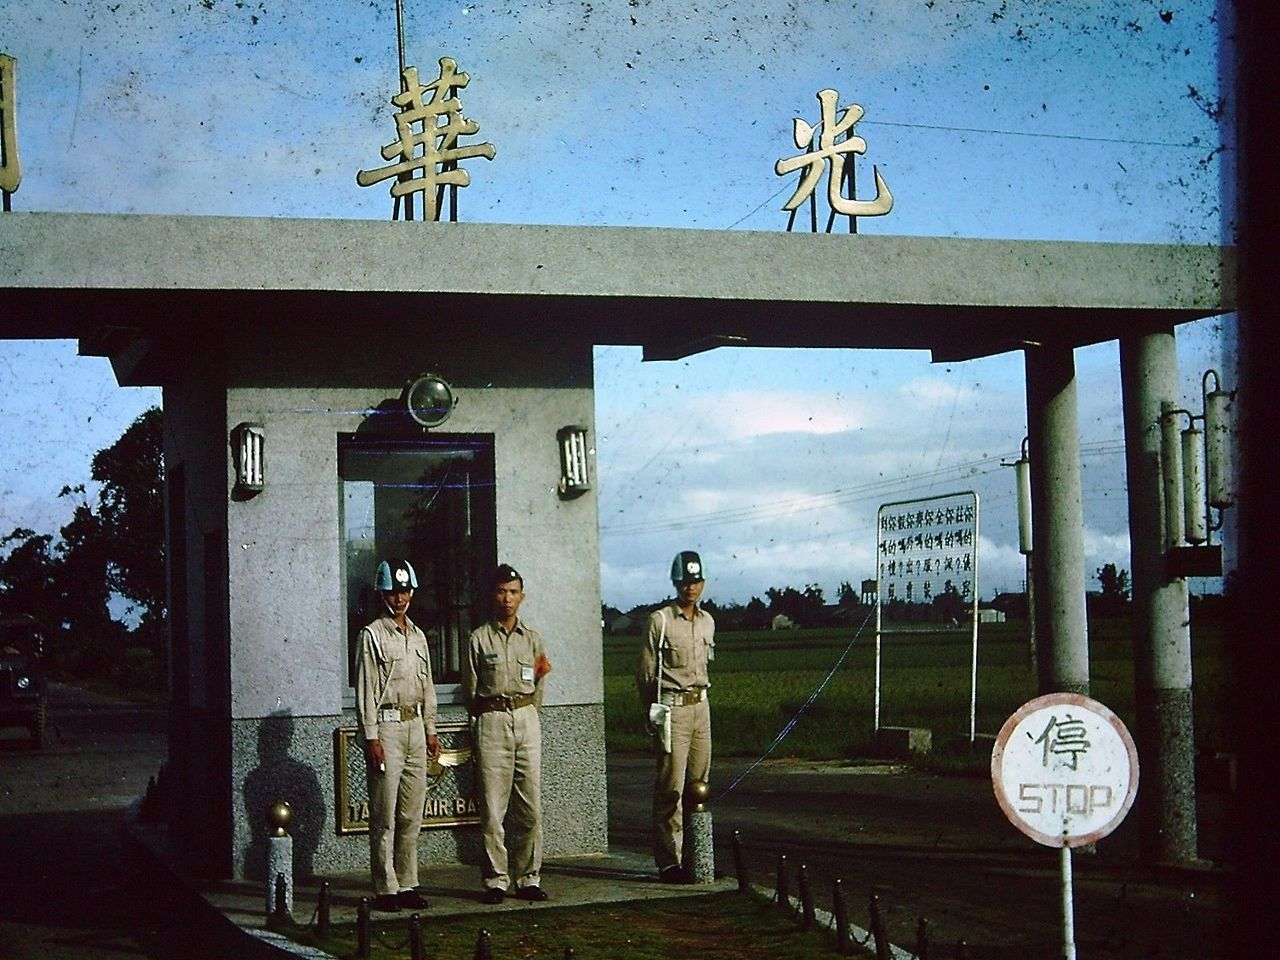 The Check point of a military air base in Taiwan, 1960s.